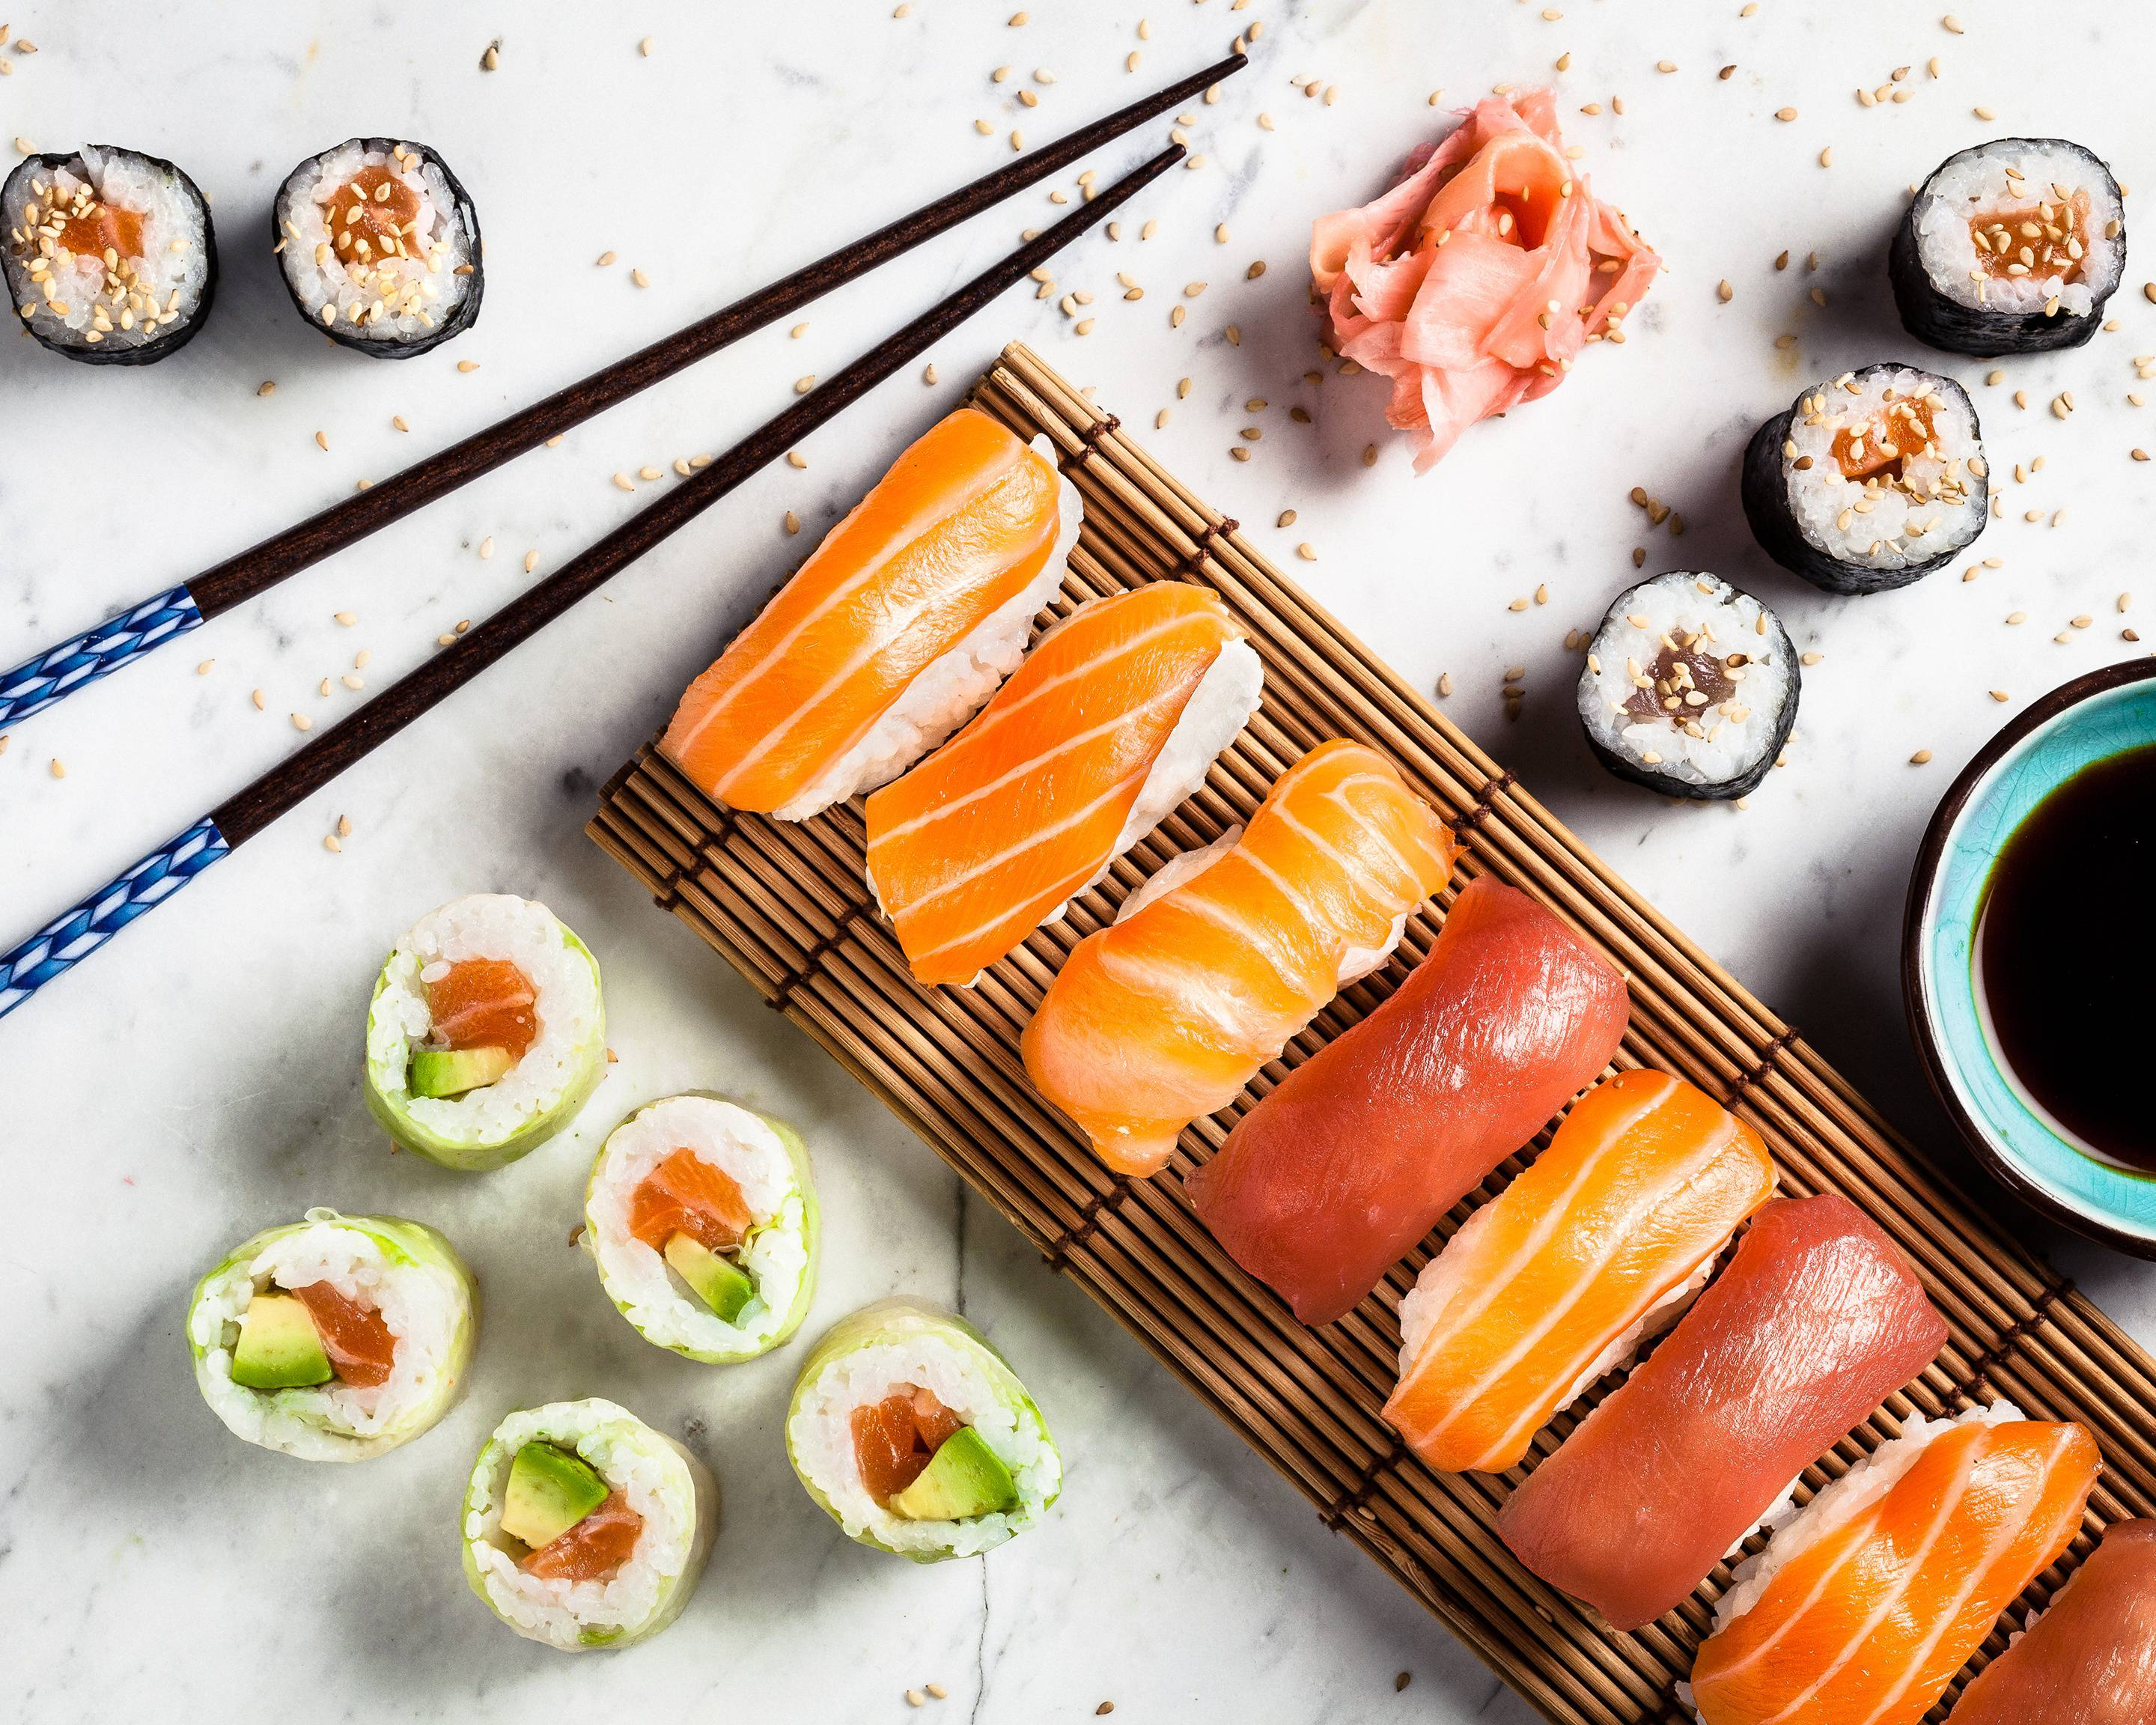 Sushi Station Takeaway In Brisbane Delivery Menu Prices Uber Eats On the street of east camelback road and street number is 1575. sushi station takeaway in brisbane